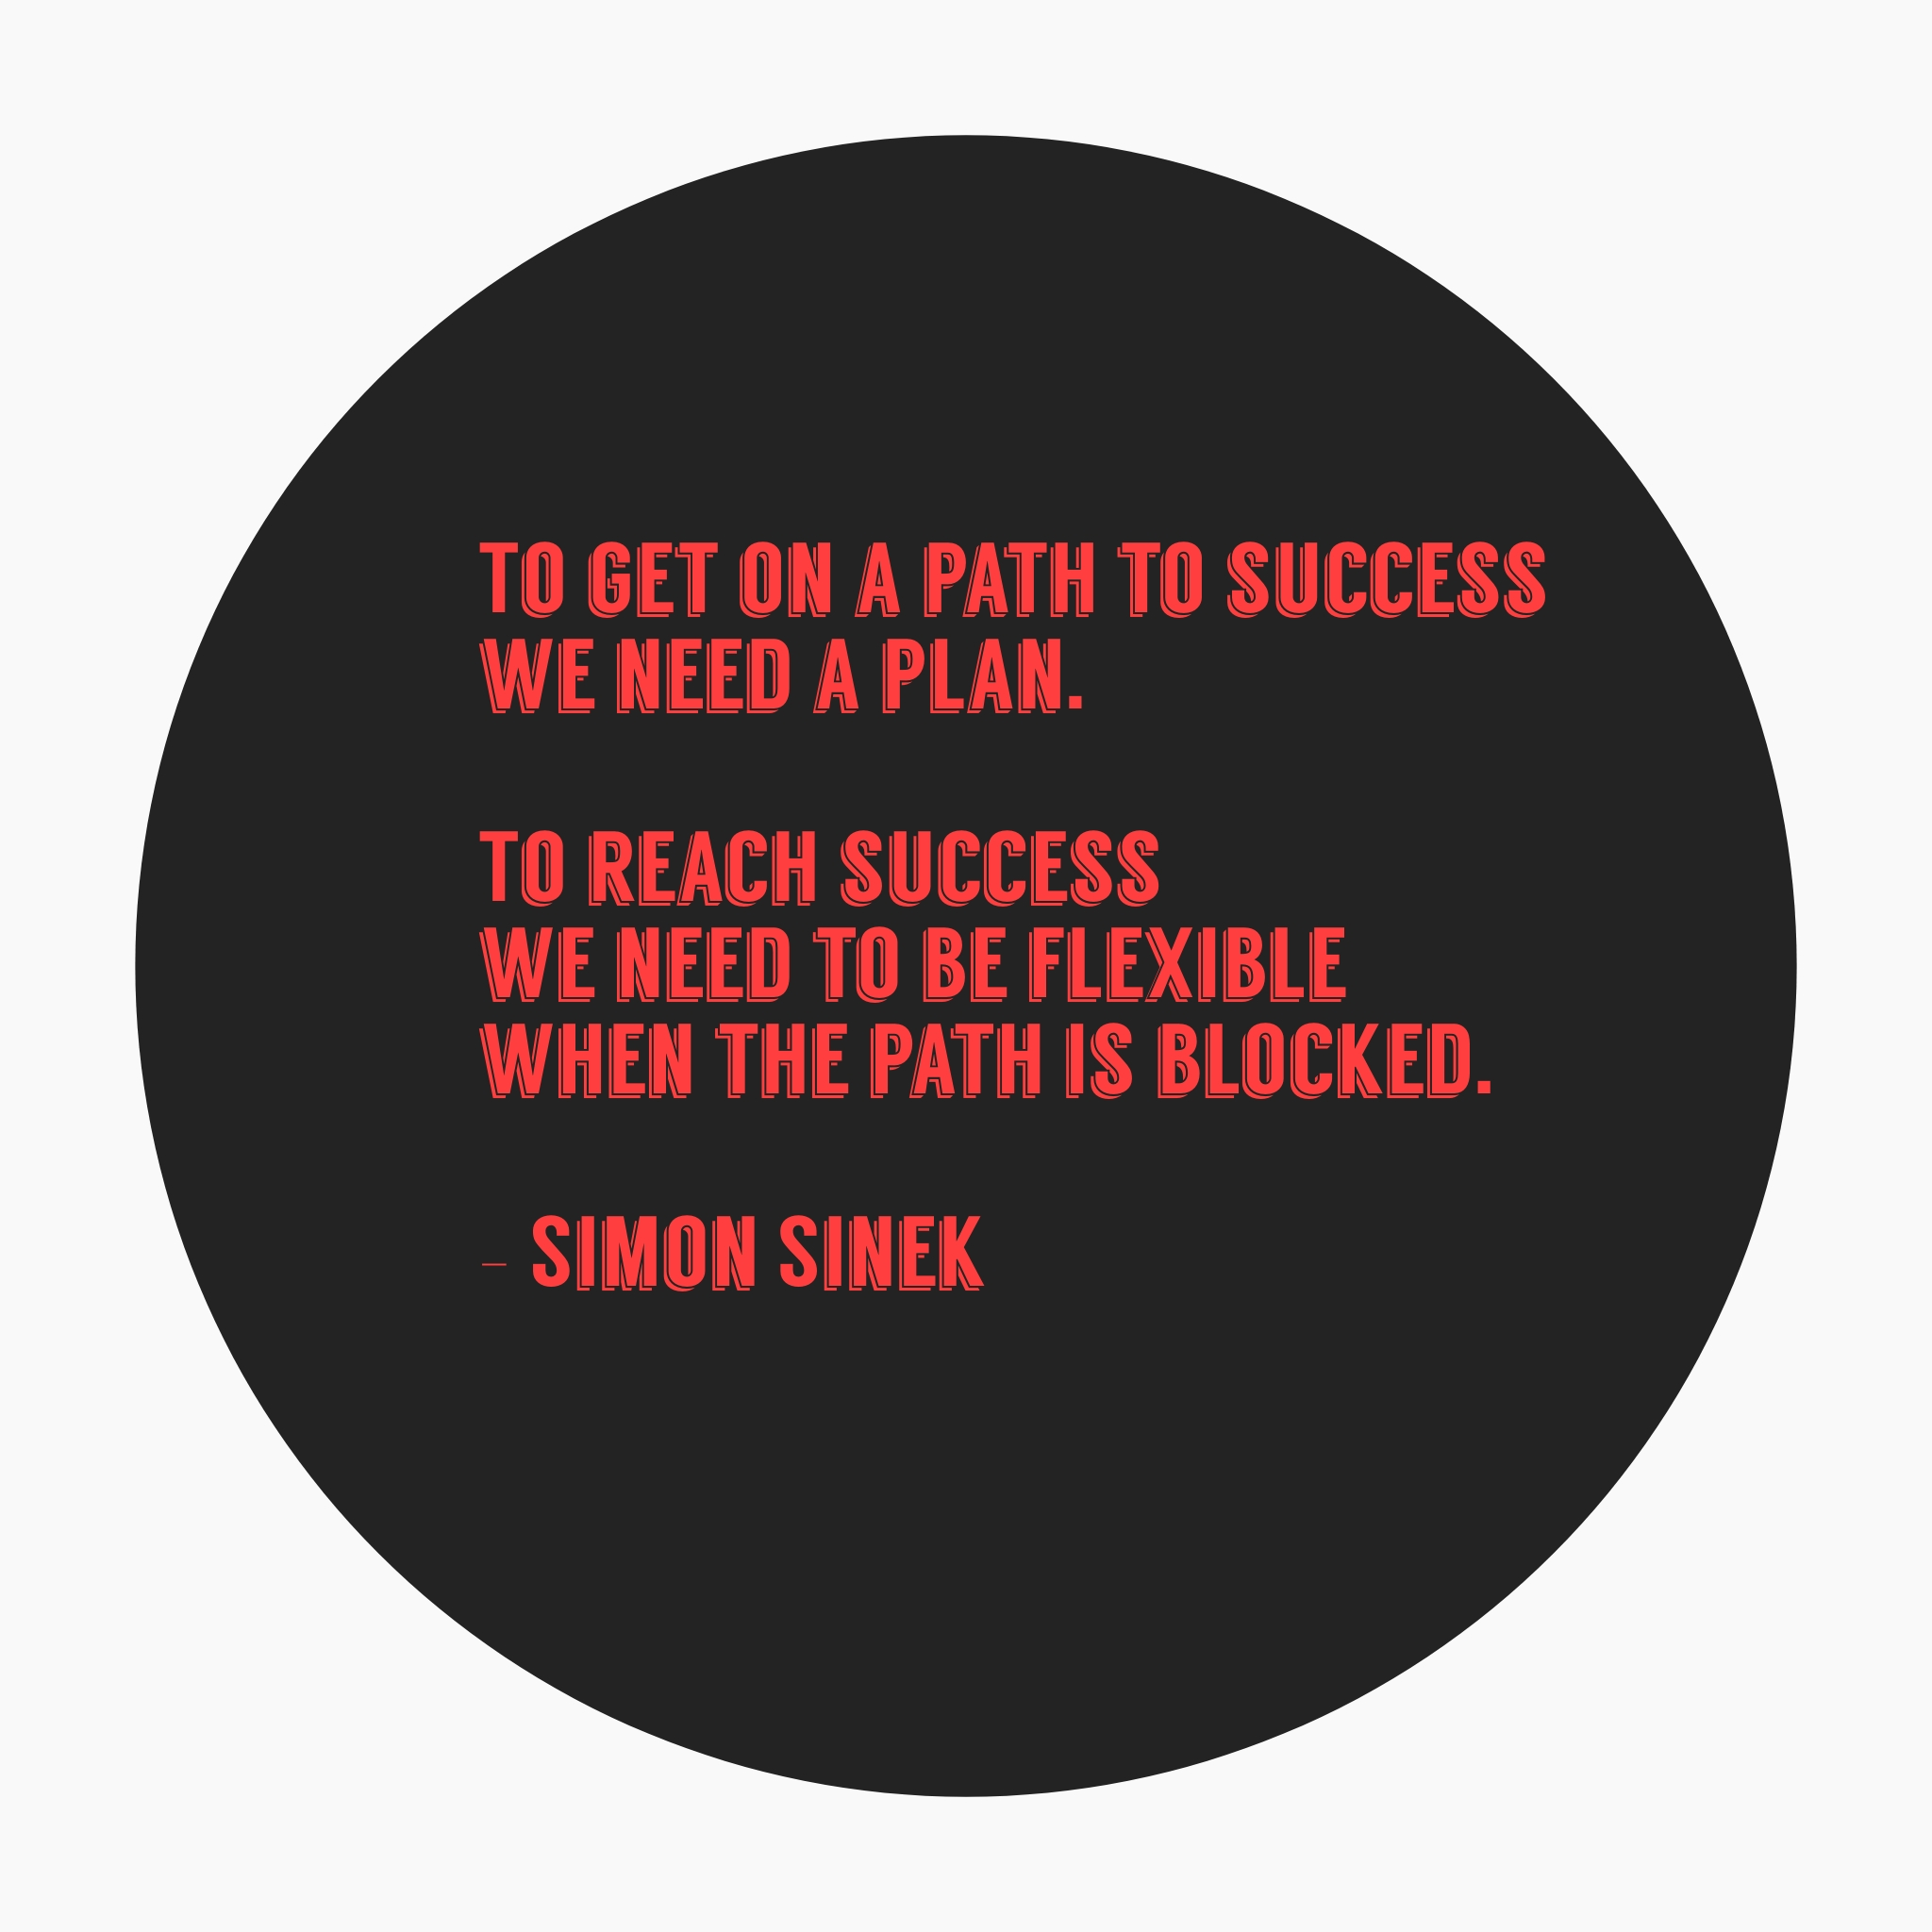 [Image] Build the plan